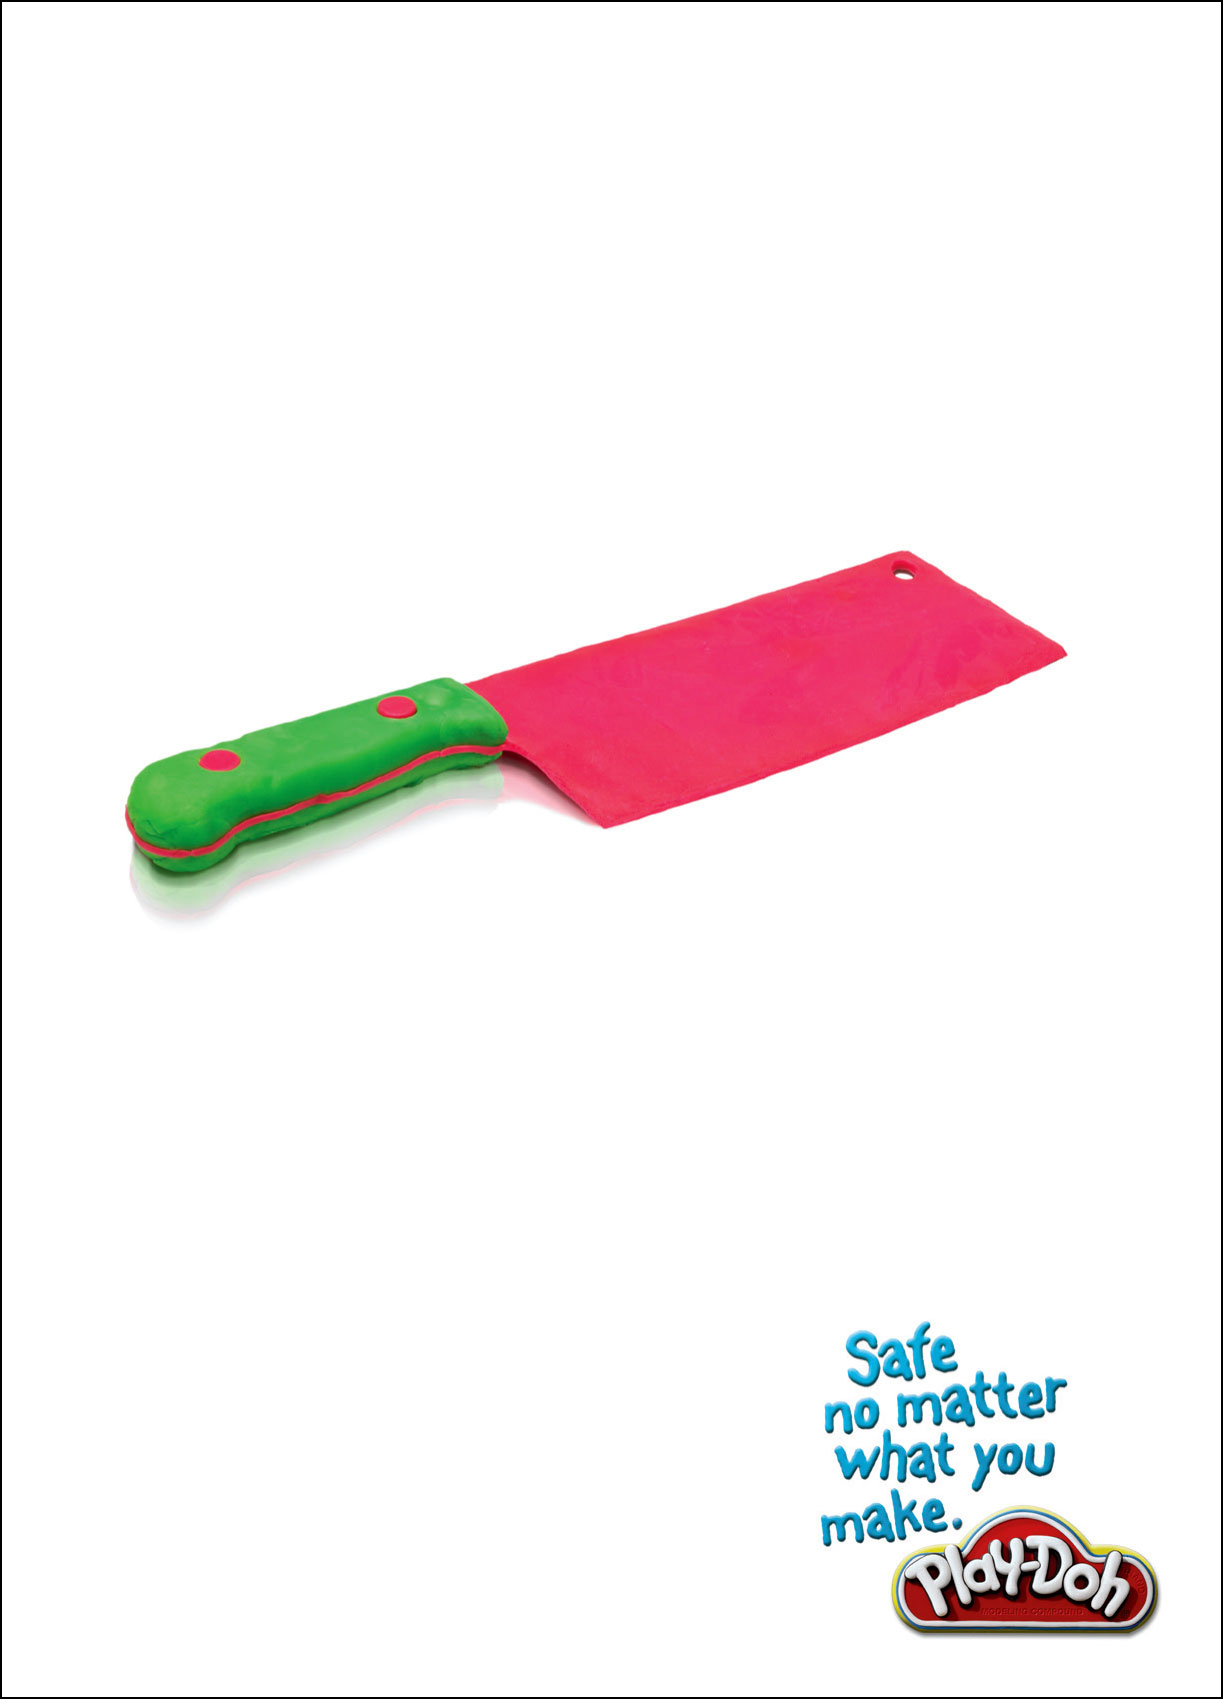 Play-Doh Print Ad Campaign